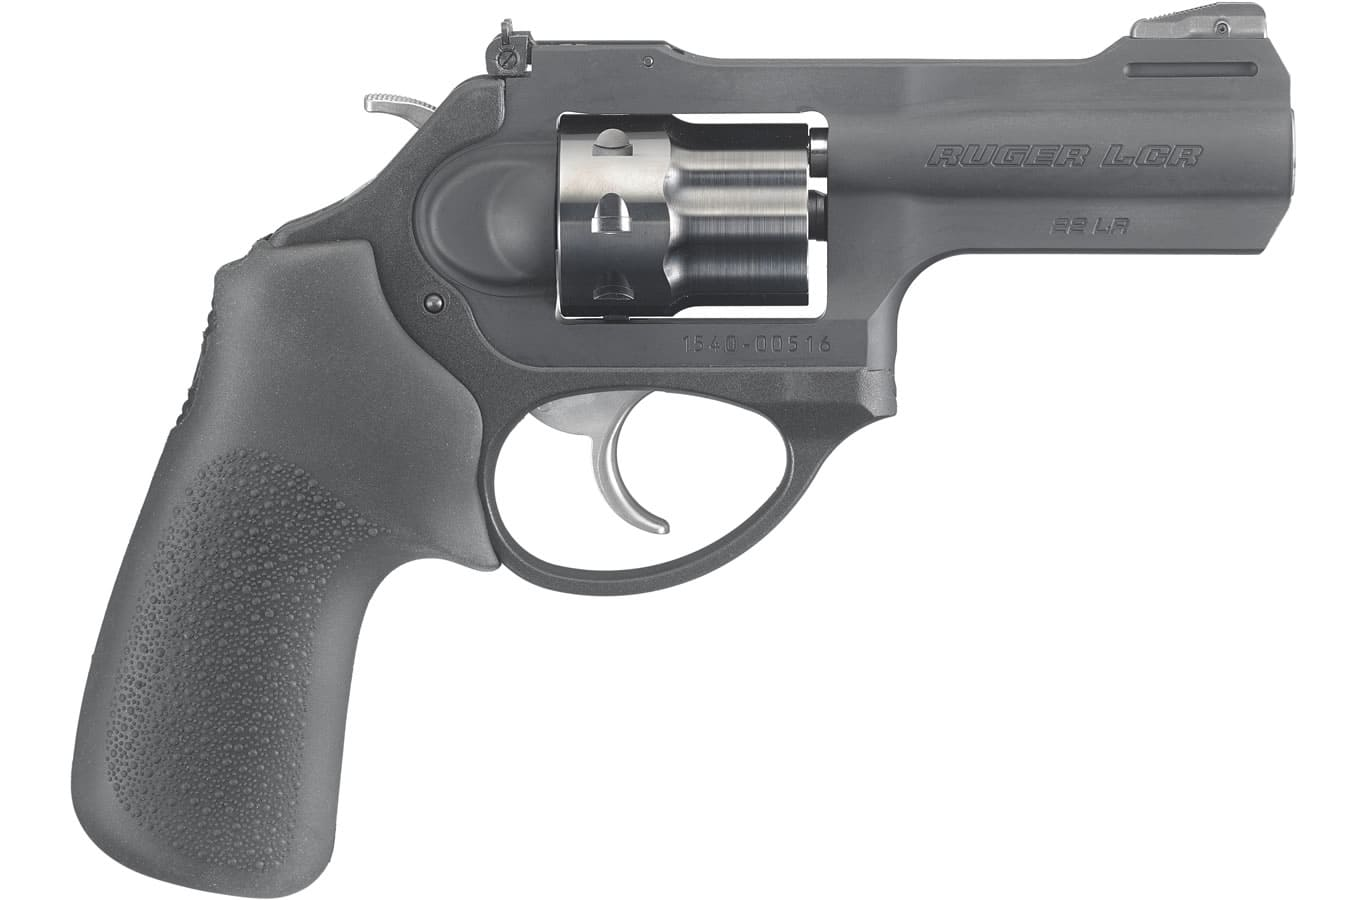 Sportsman Outdoor Superstore: Ruger LCRx 22LR Double-Action Revolver with 3-Inch Barrel - $389.99. Free shipping